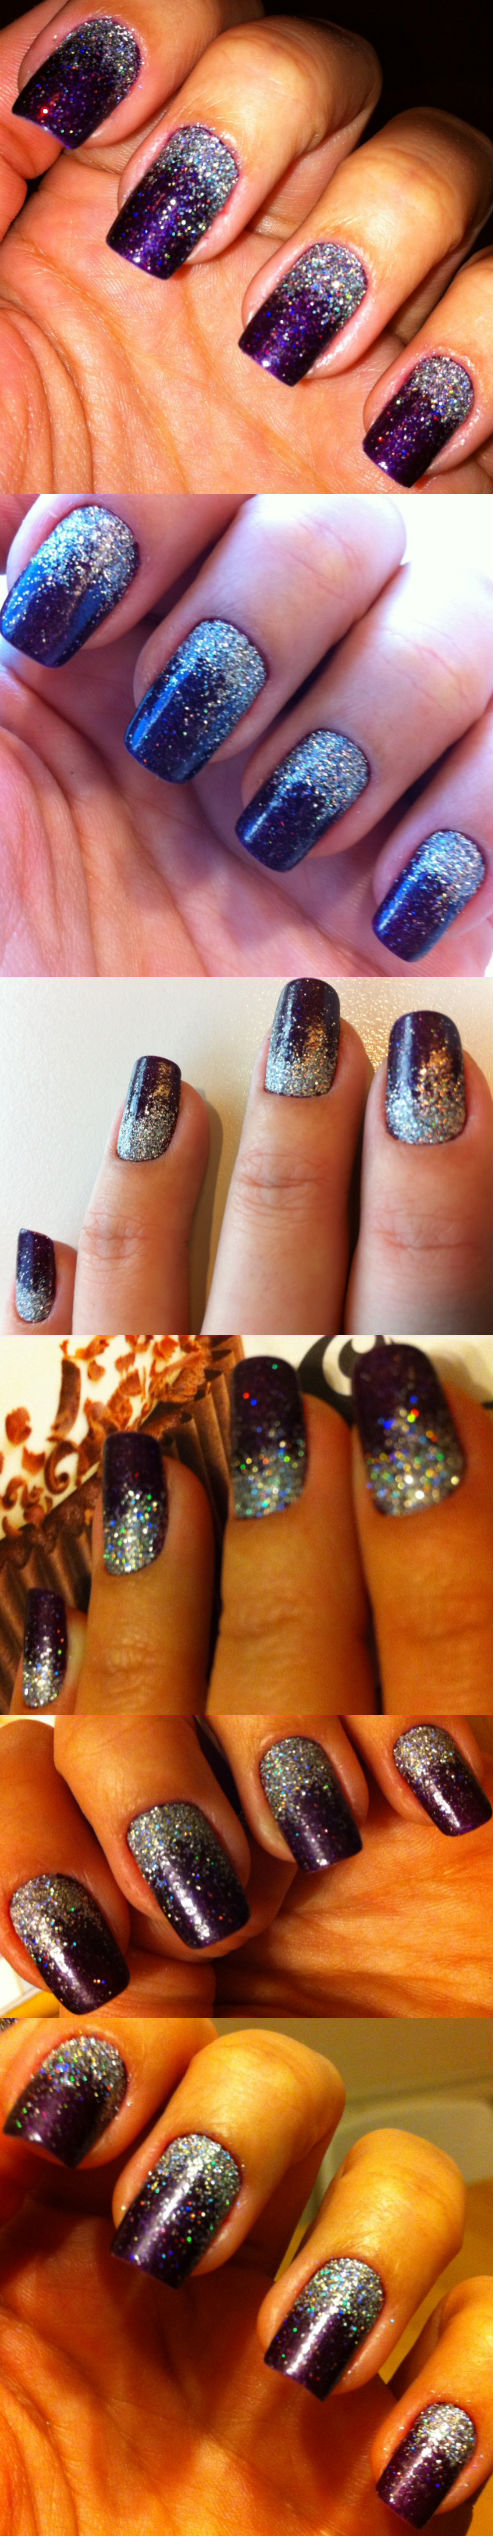 purple nails with silver holographic glitter